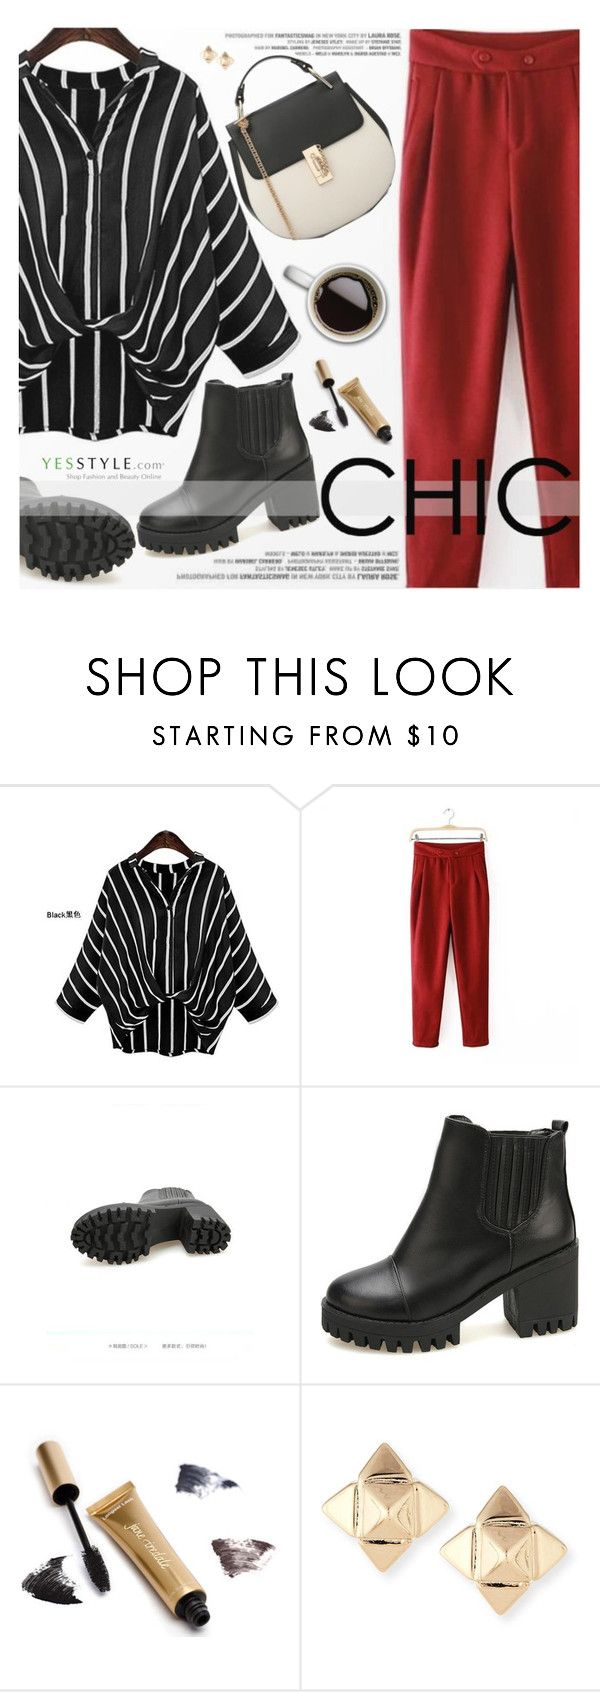 Yesstyle 10 Off Coupon Clothes Design Fashion Outfit Accessories